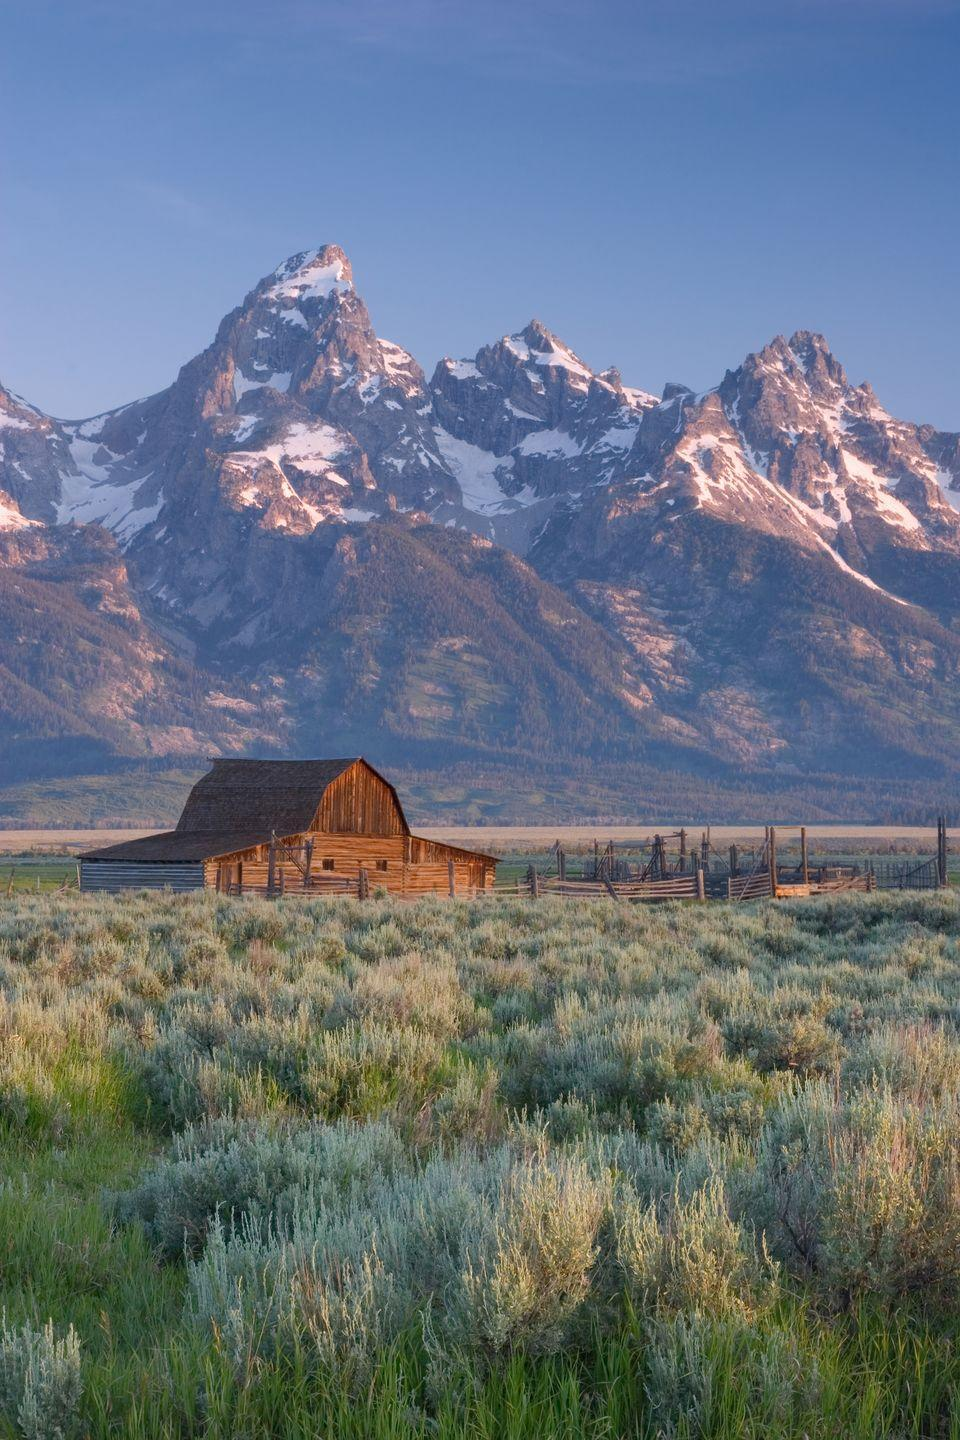 """<p><strong>Where: </strong>Grand Teton, Wyoming</p><p><strong>Why We Love It: </strong>This mountain is so beautiful that it had an entire national park named after it.</p><p><strong>RELATED:</strong> <a href=""""https://www.countryliving.com/life/travel/g4206/americas-best-small-mountain-towns/"""" rel=""""nofollow noopener"""" target=""""_blank"""" data-ylk=""""slk:Small Mountain Towns Perfect for a Summer Vacation"""" class=""""link rapid-noclick-resp"""">Small Mountain Towns Perfect for a Summer Vacation</a></p>"""